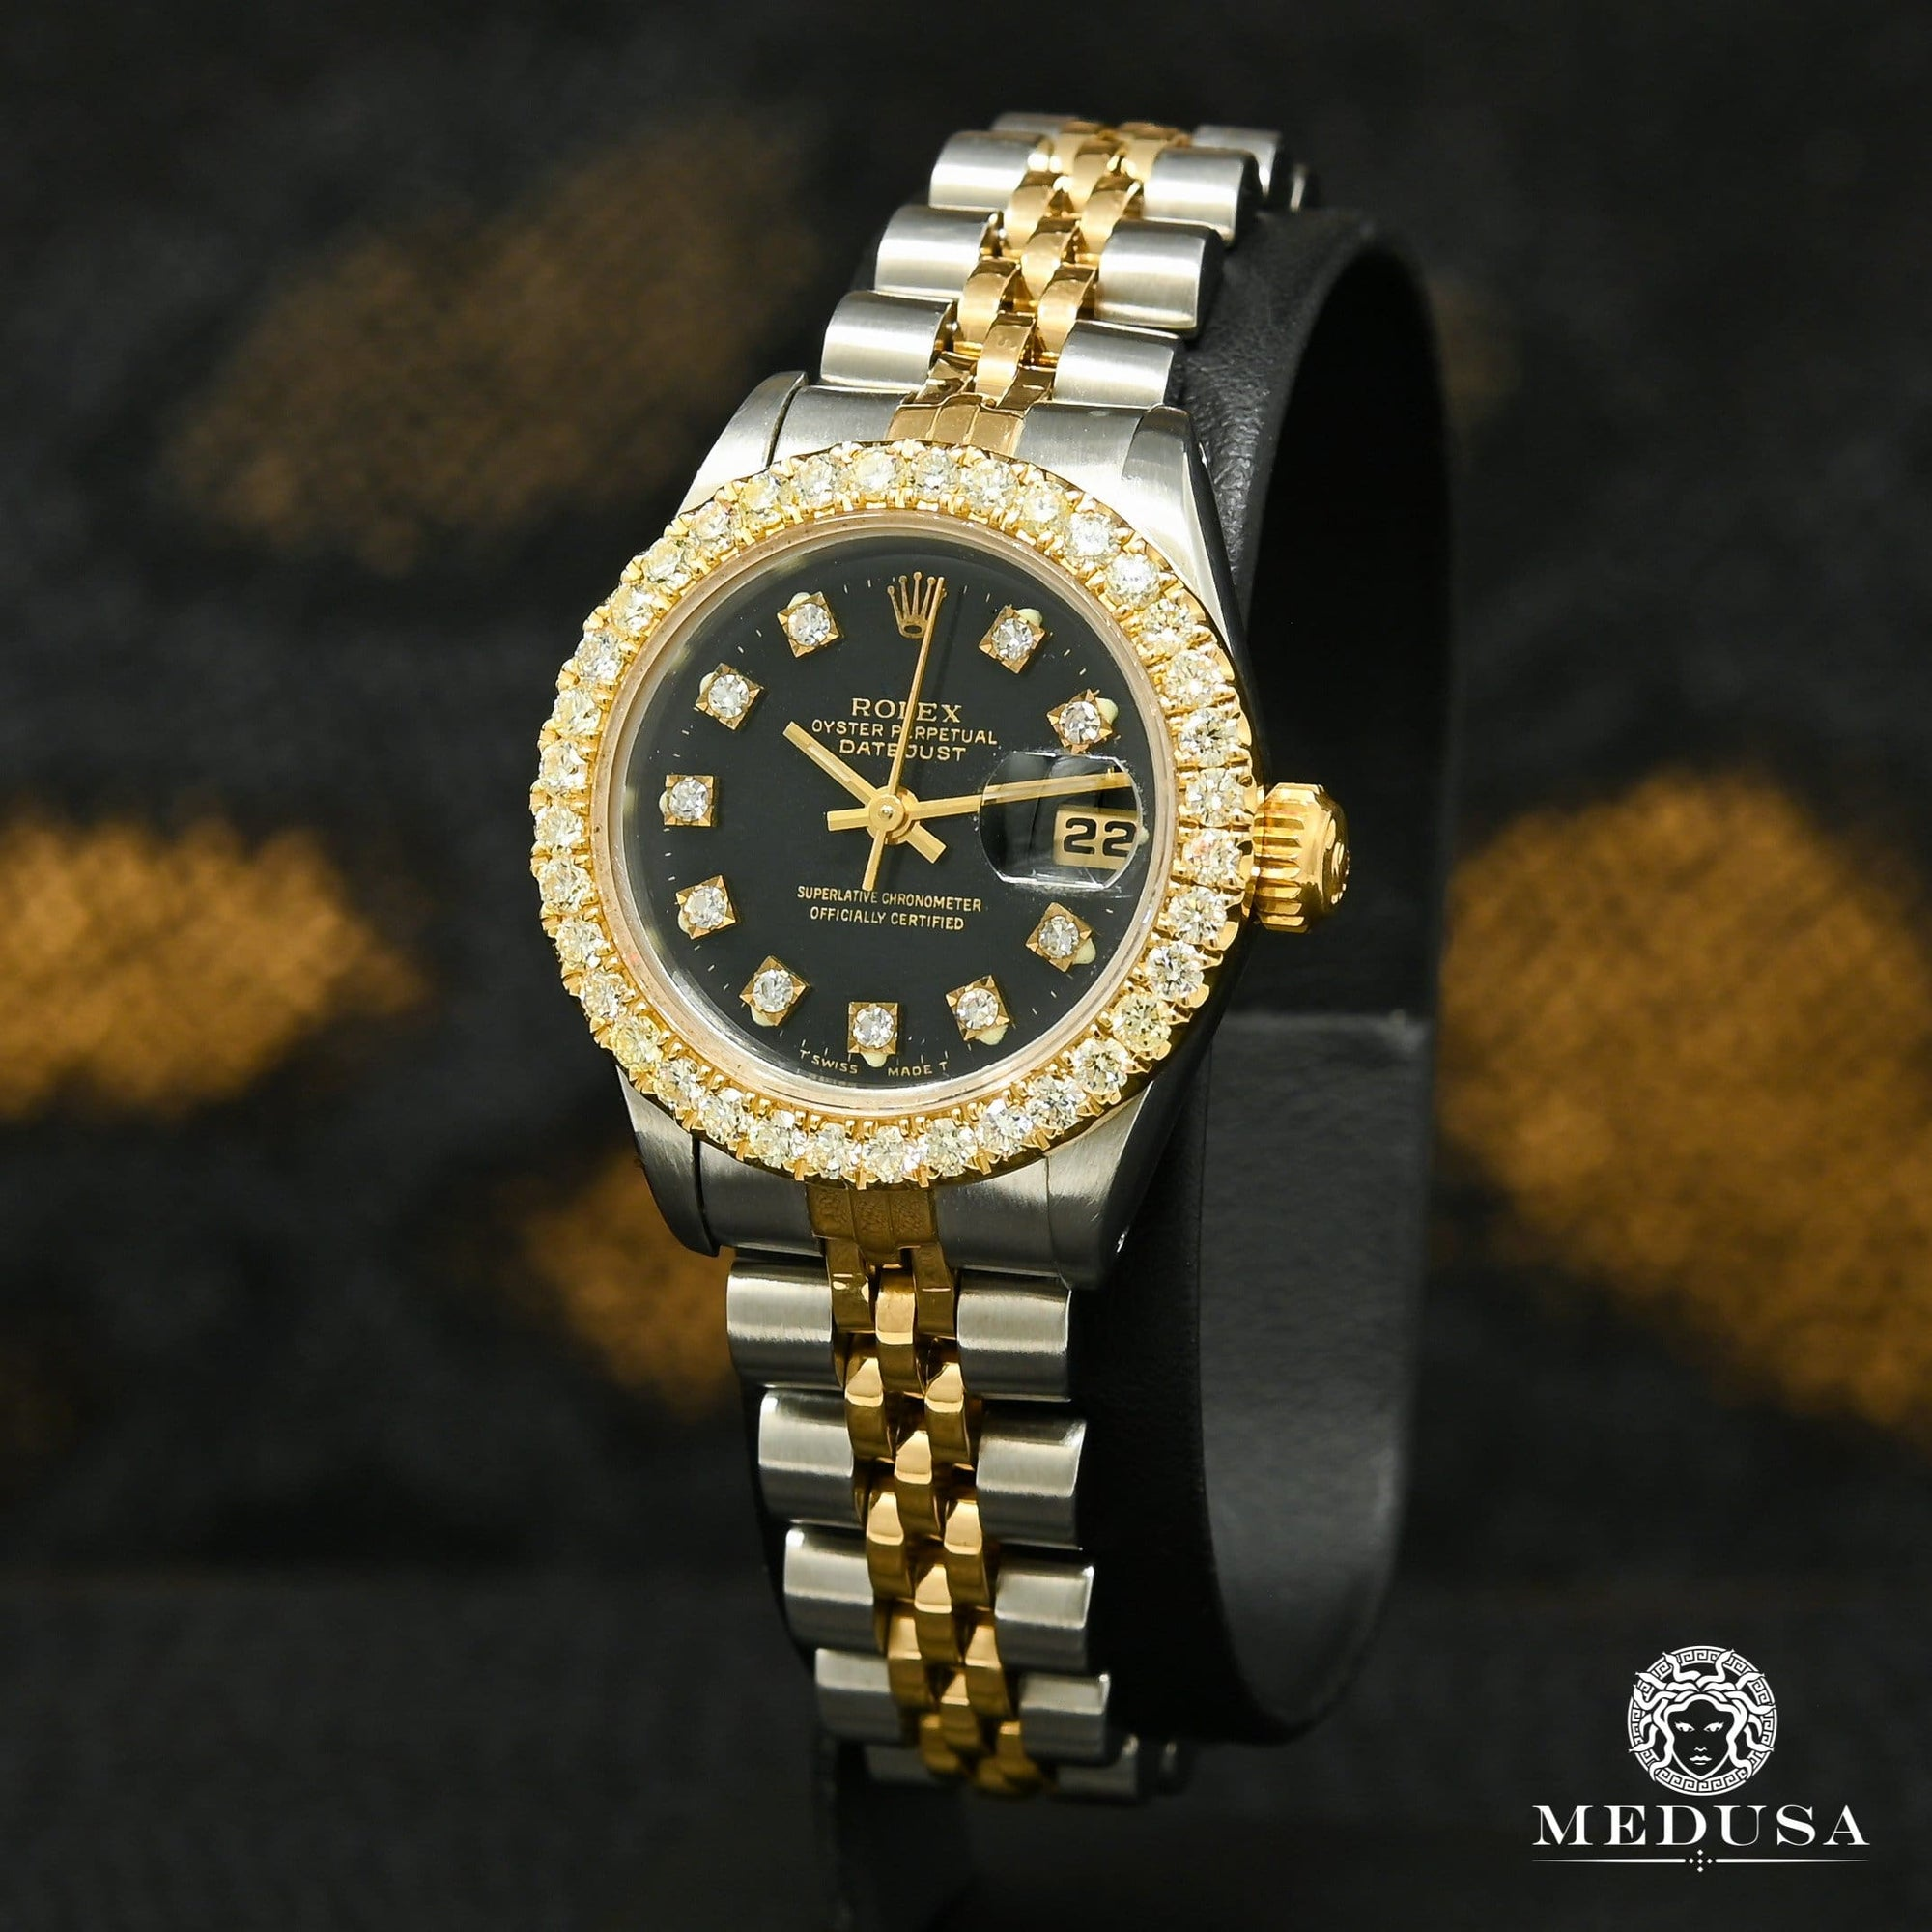 Rolex watch | Rolex Datejust 26mm Woman Watch - Black Gold 2 Tones